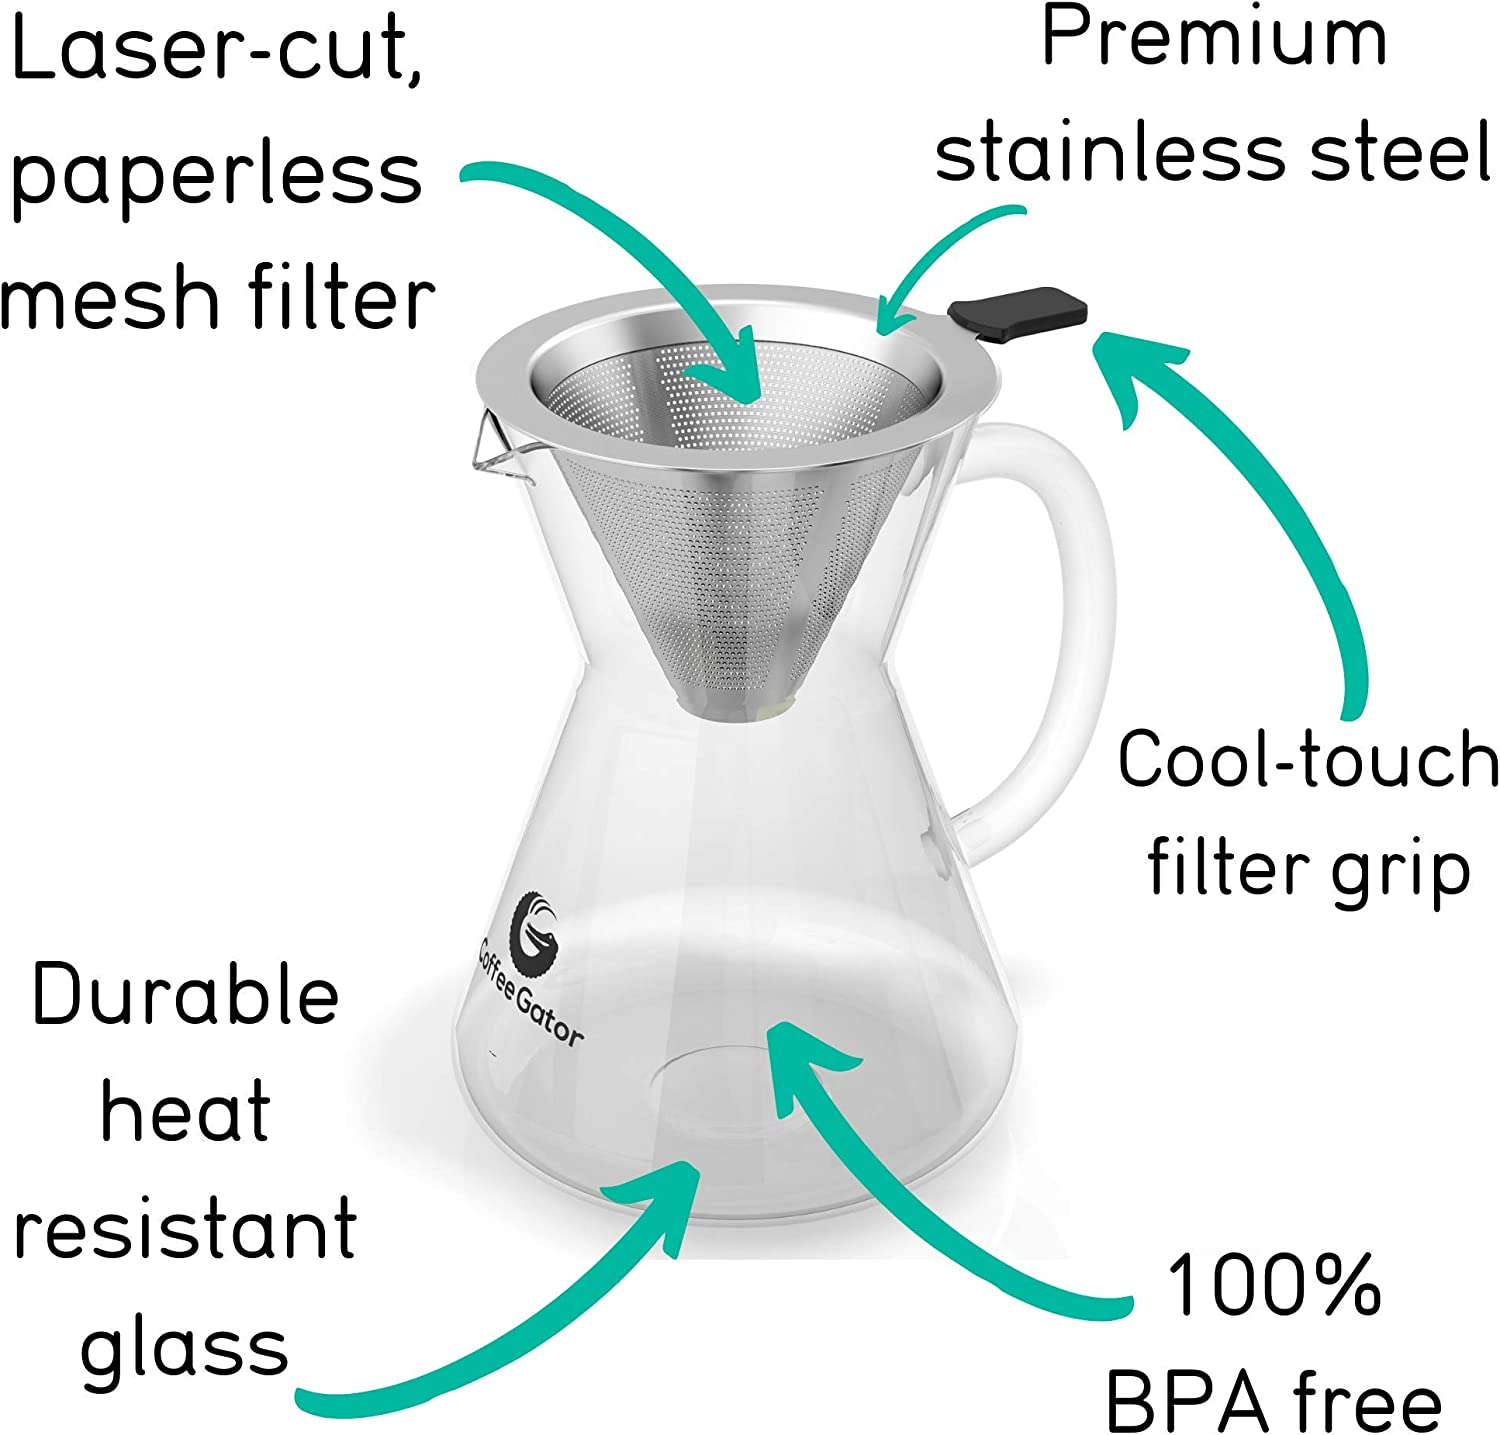 Best Pour-Over Coffee Makers in 2020: Reviews & Buying Guide 21